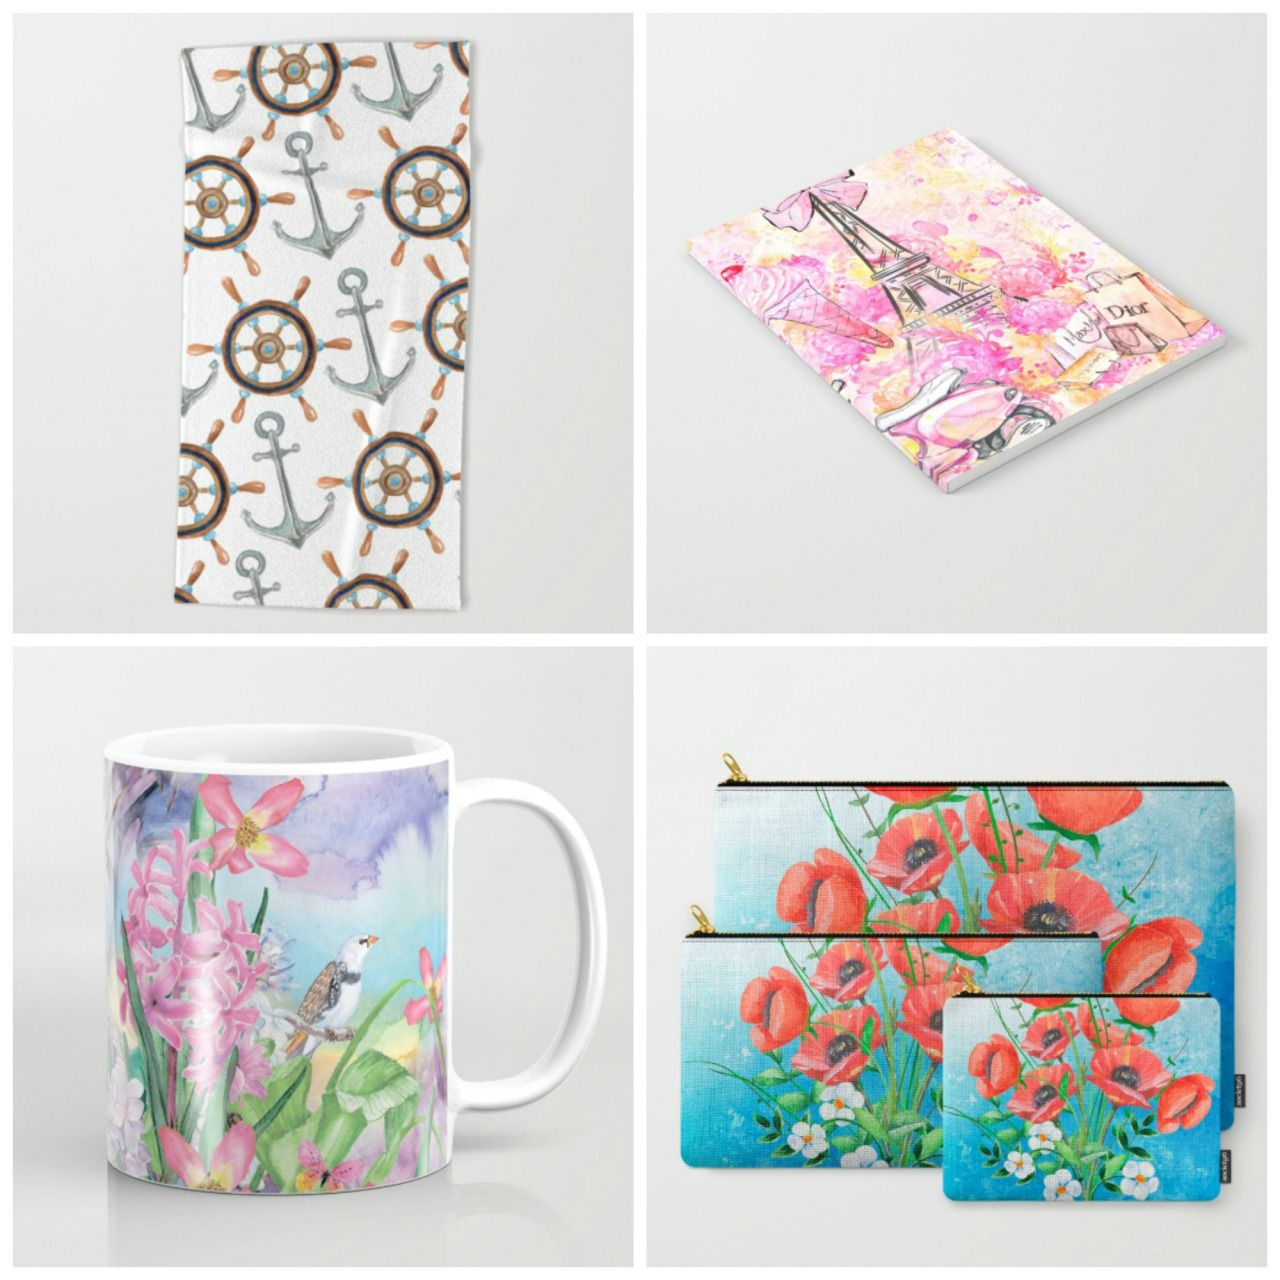 Newest #nautical #fashion #flowers Available in different products #towels #notebook #mugs #carryallpouches etc. Check more designs at society6.com/julianarw